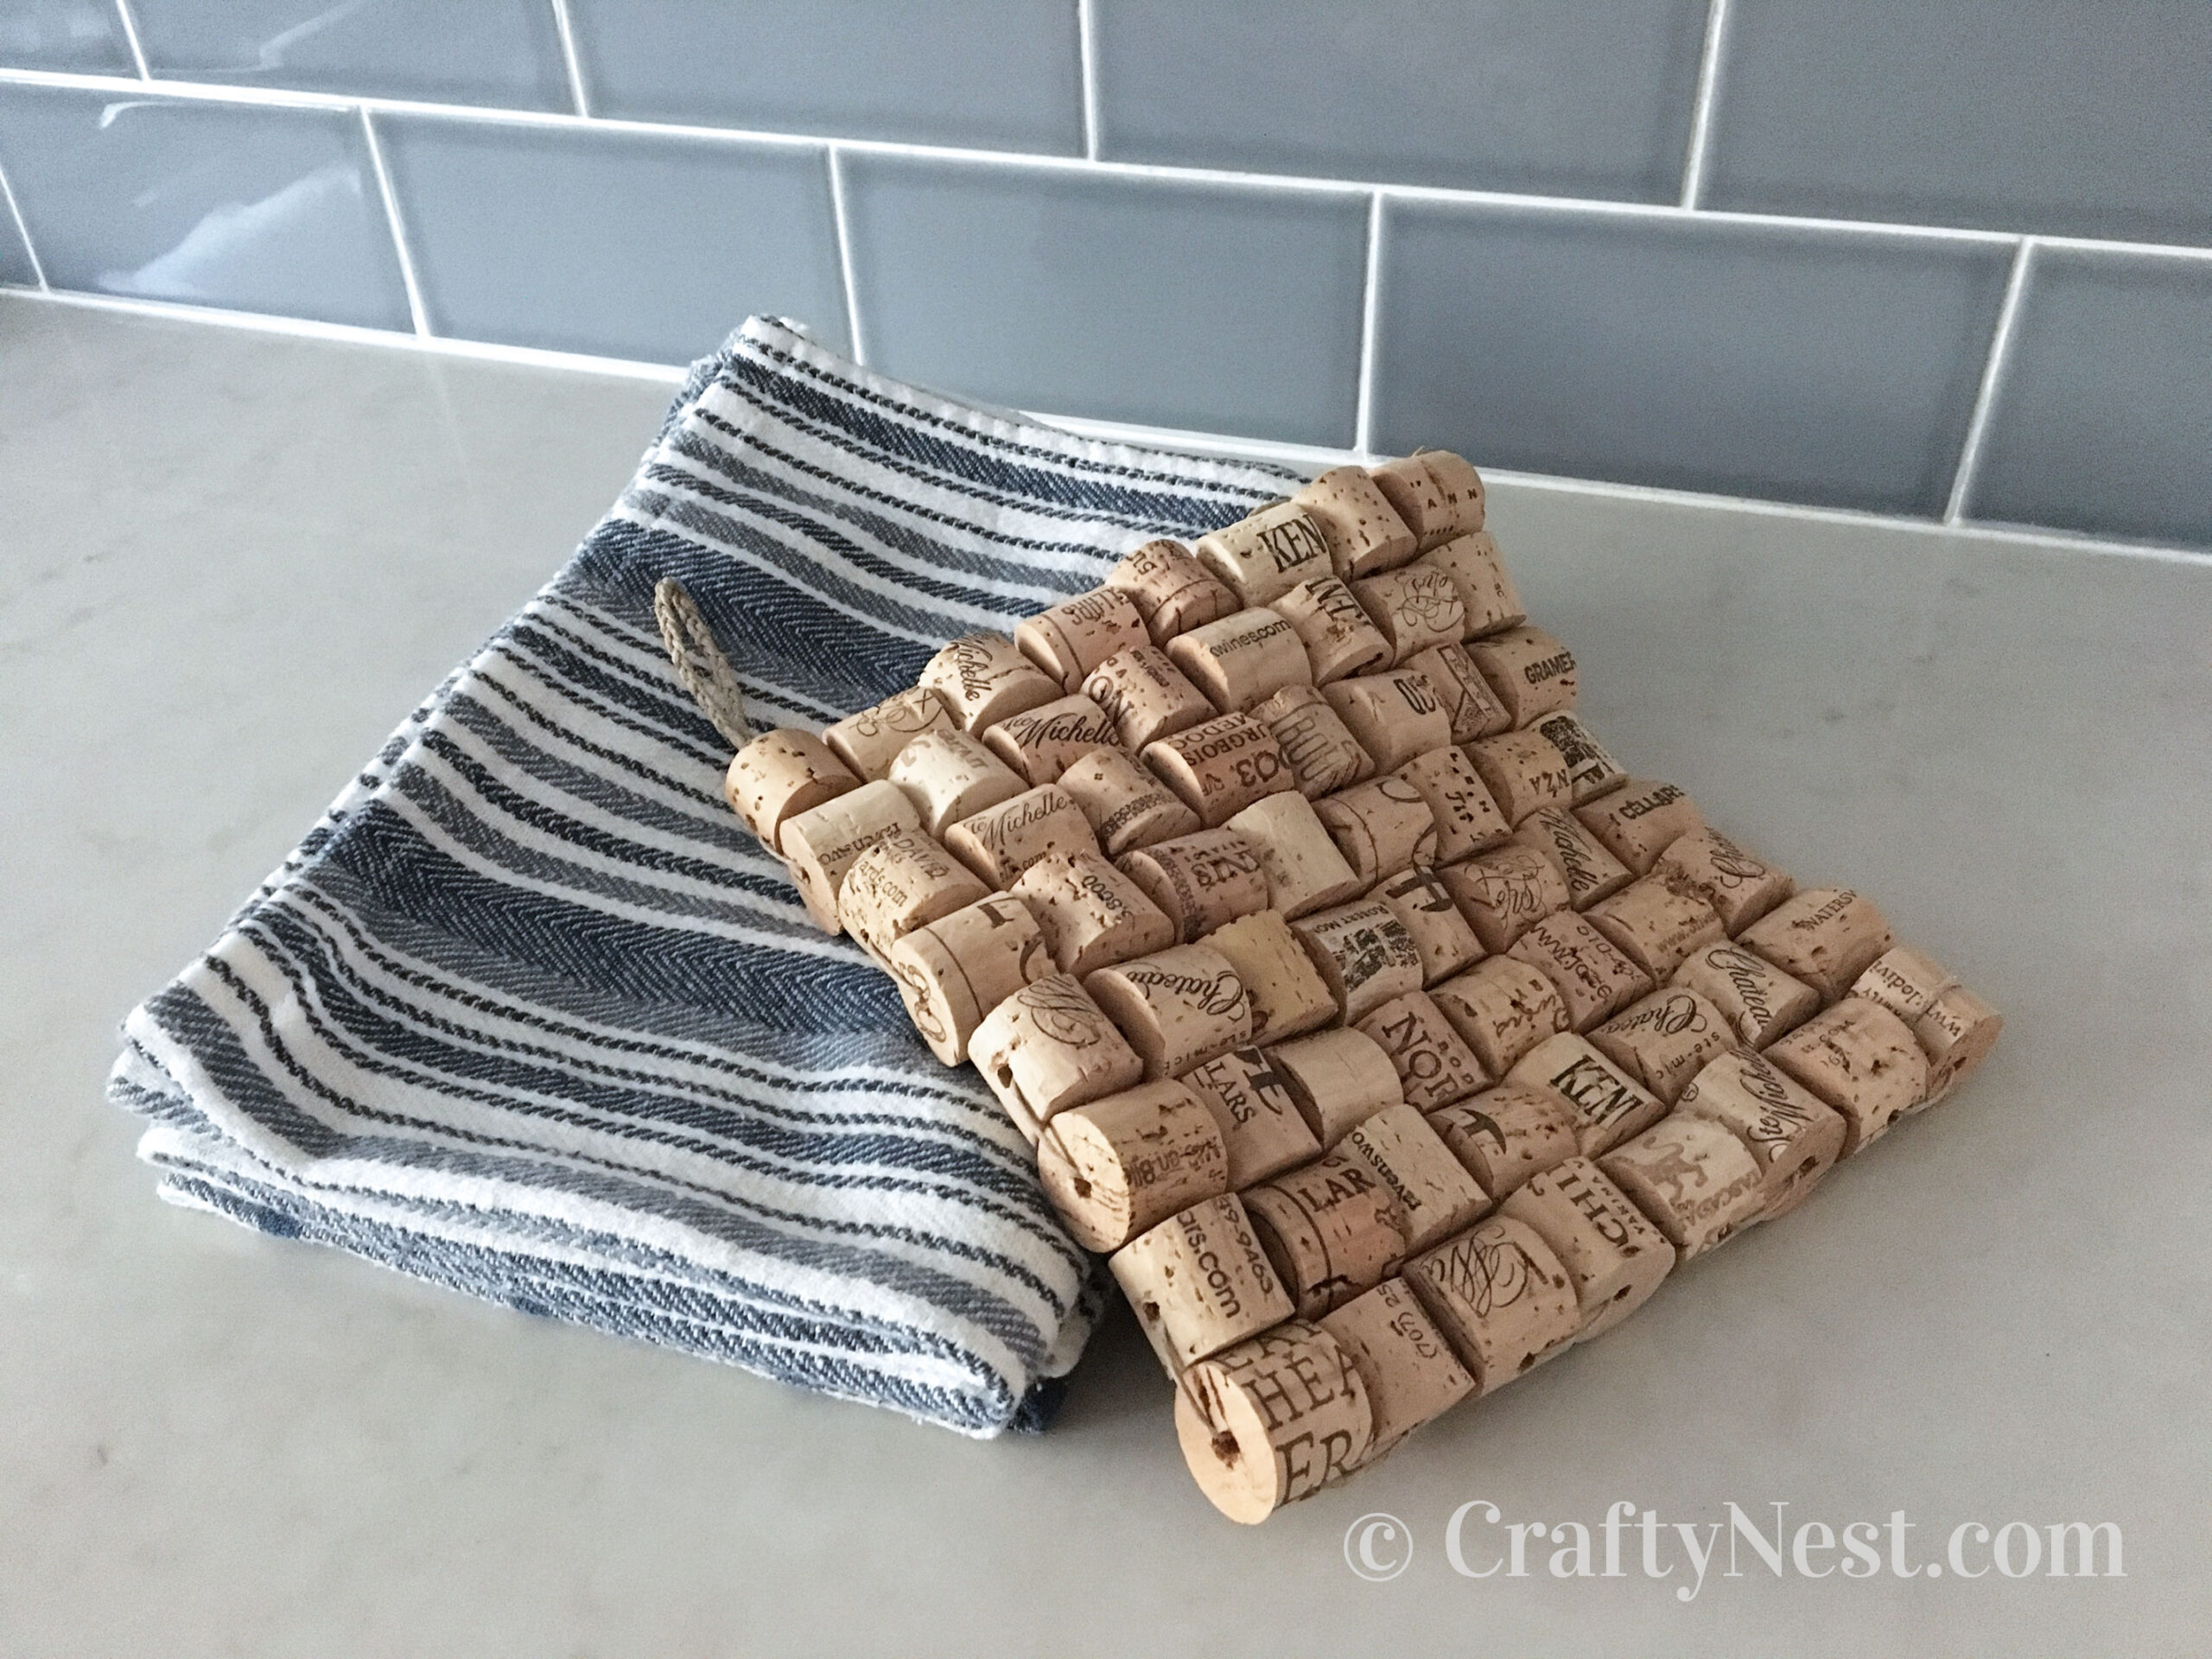 Wine cork trivet draped over a stack of dish towels, photo